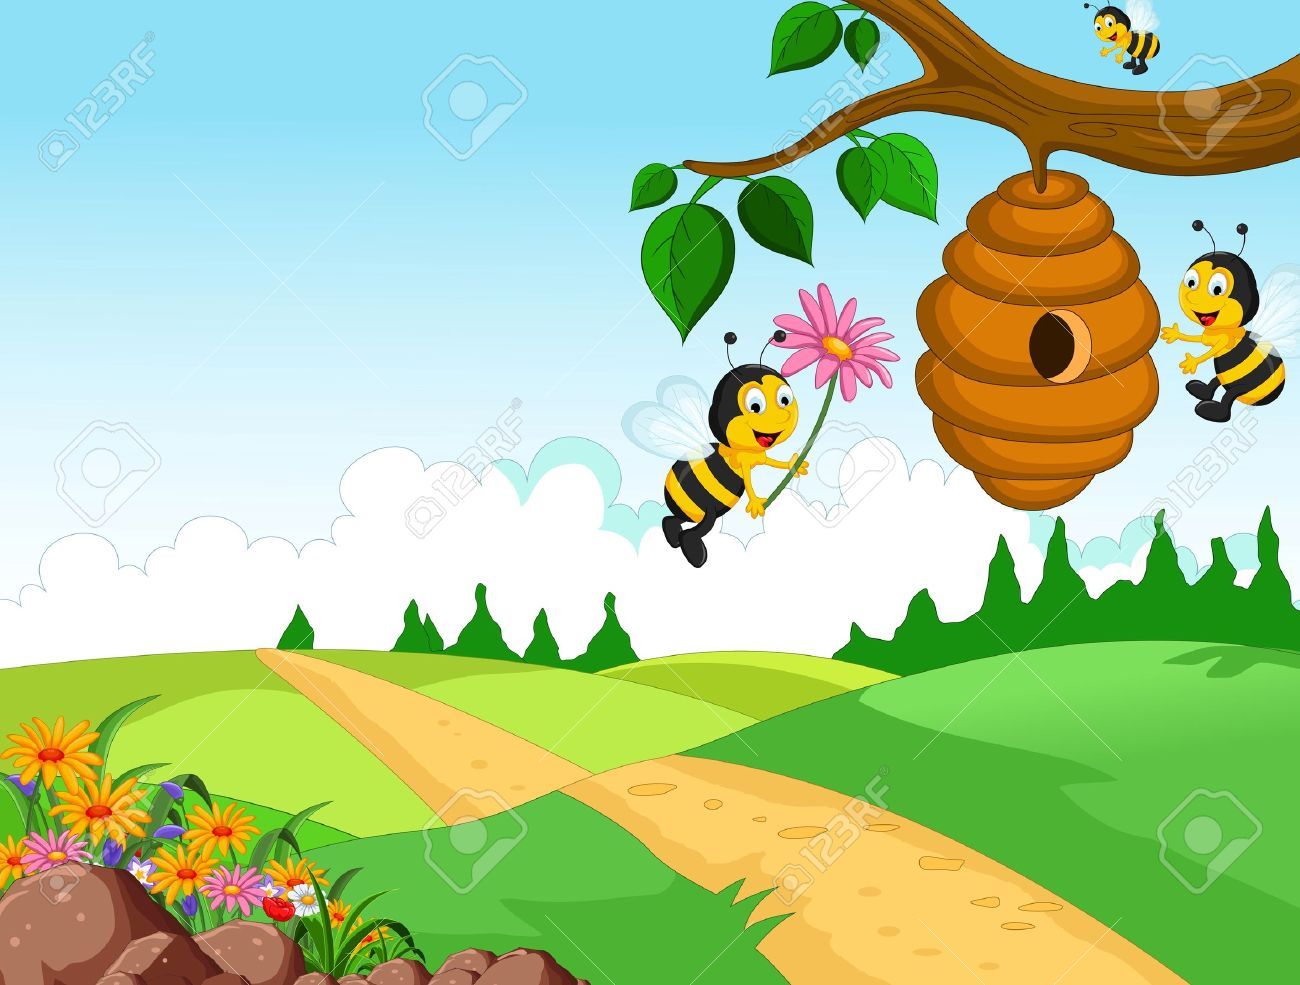 Bees cartoon holding flower and a beehive with forest background - 41506536